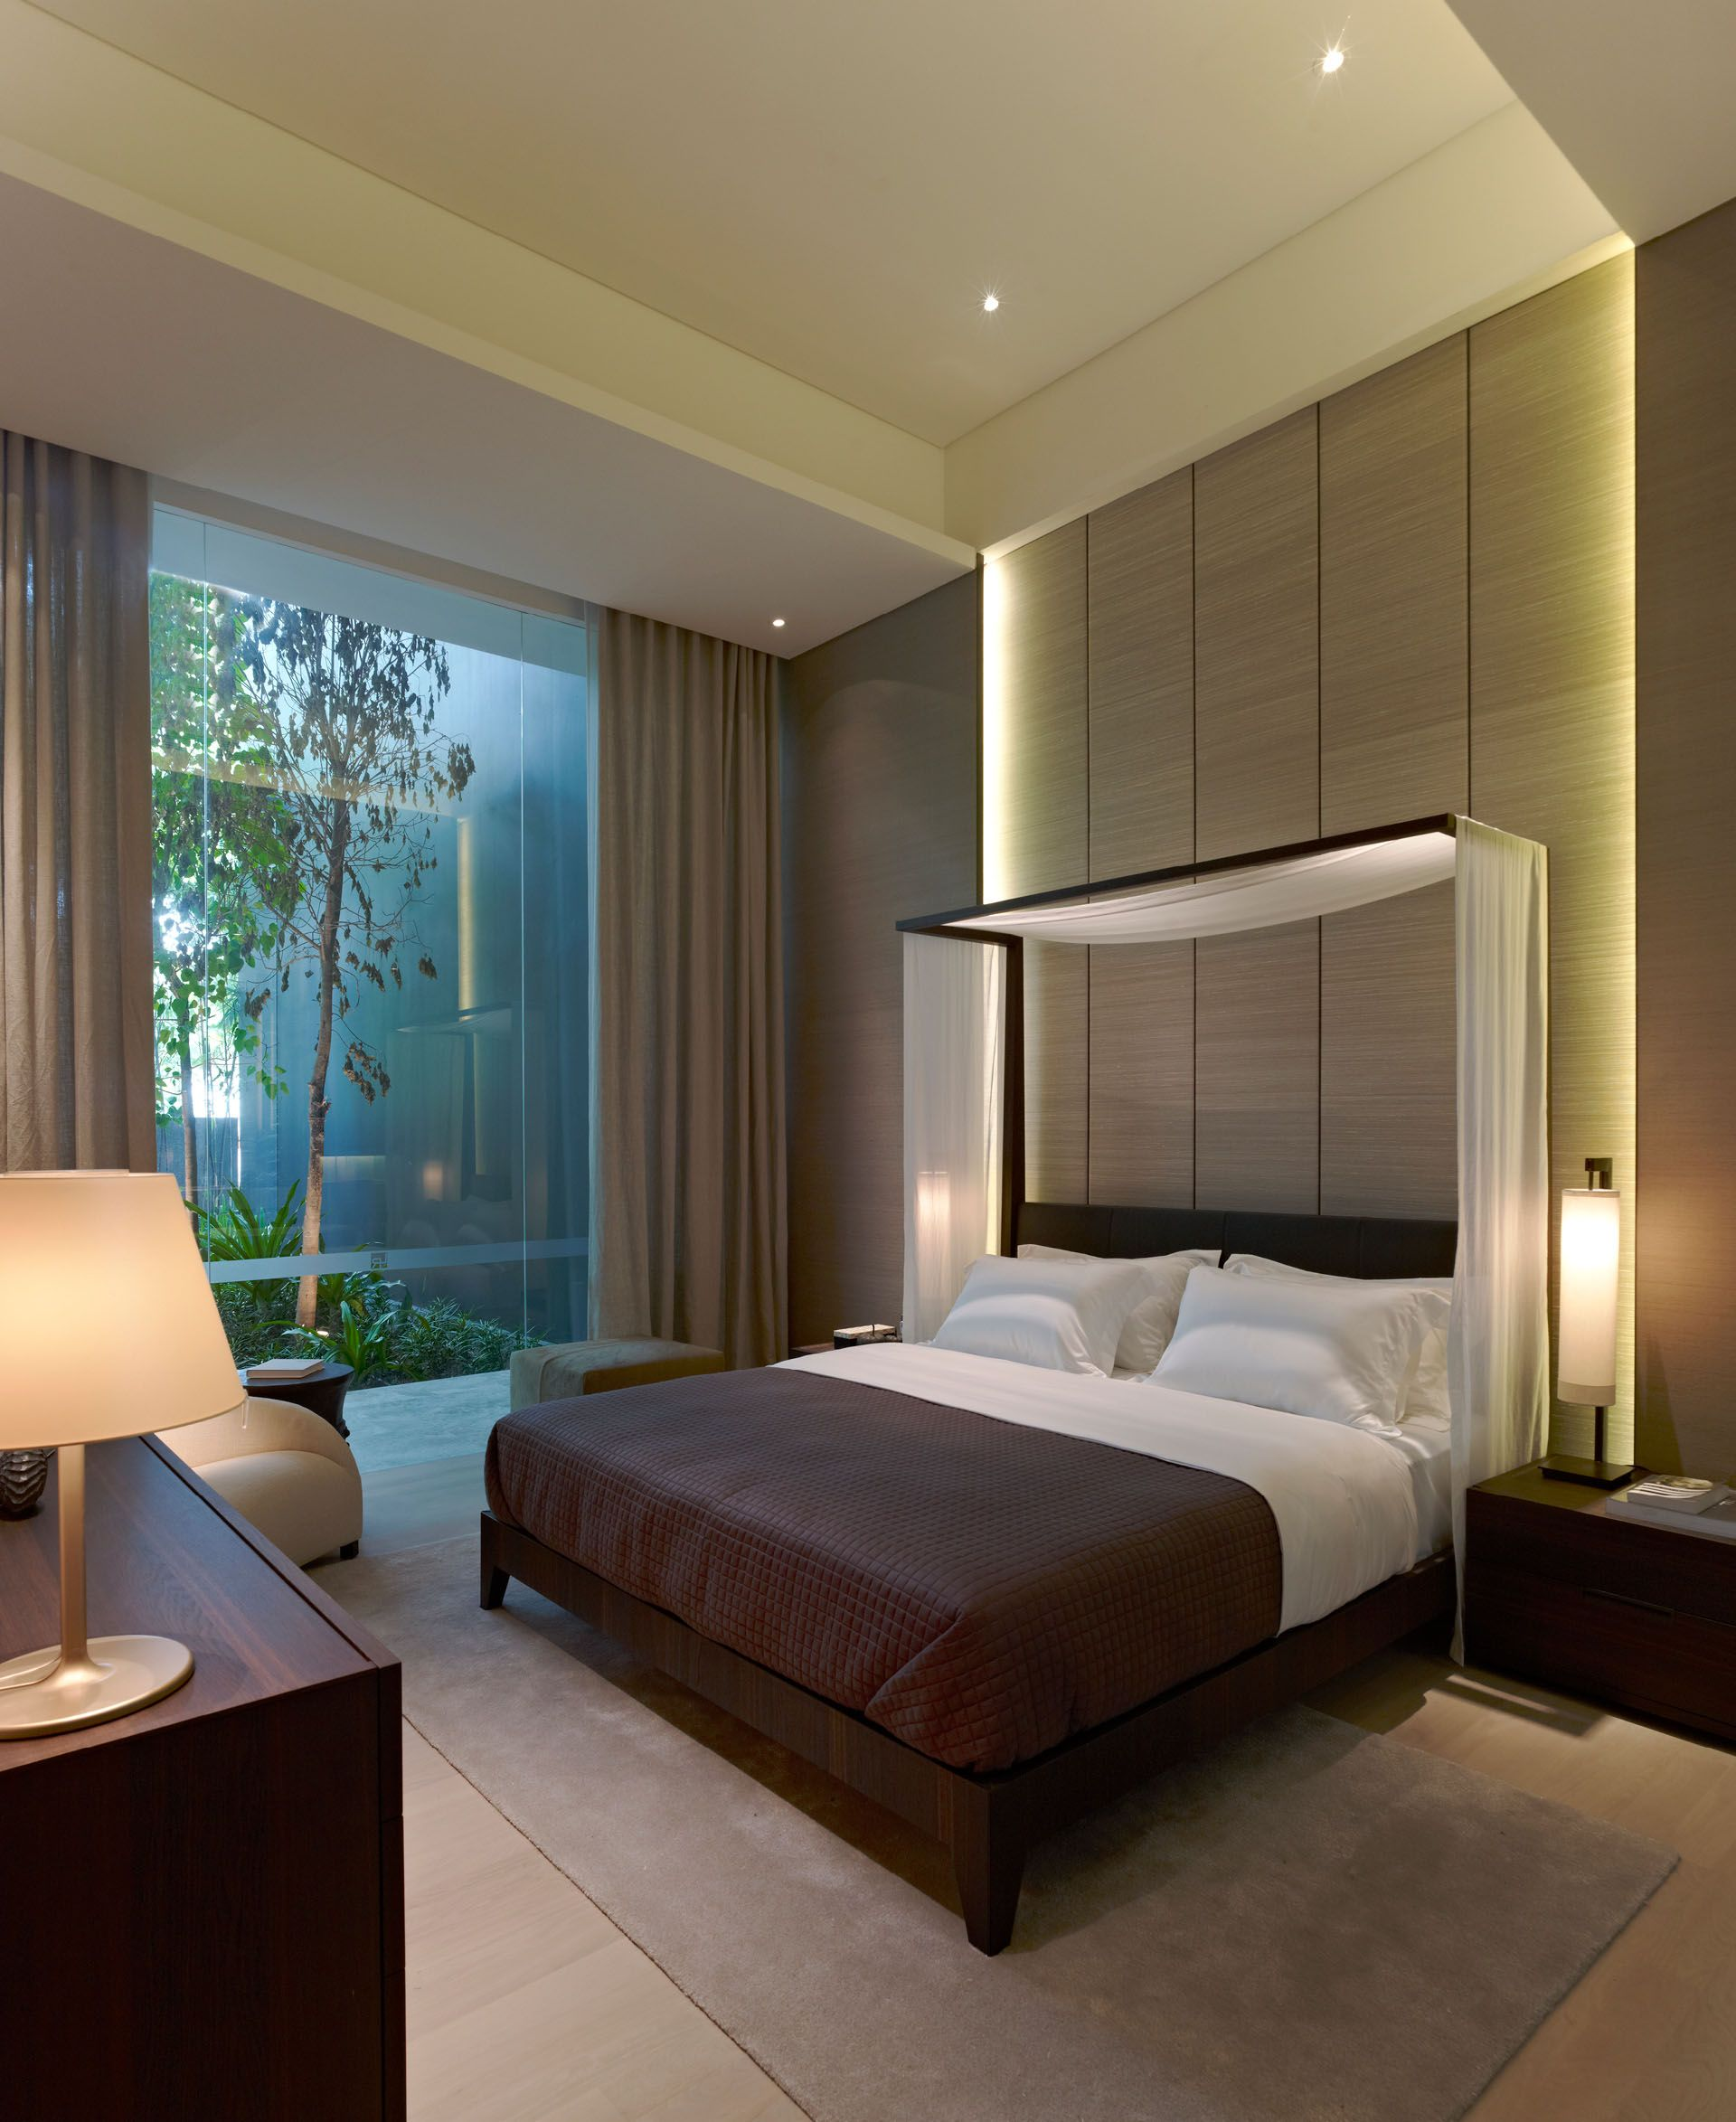 Scda Leedon Residence Singapore Luxury Residences Pinterest Singapore Lighting And Beds